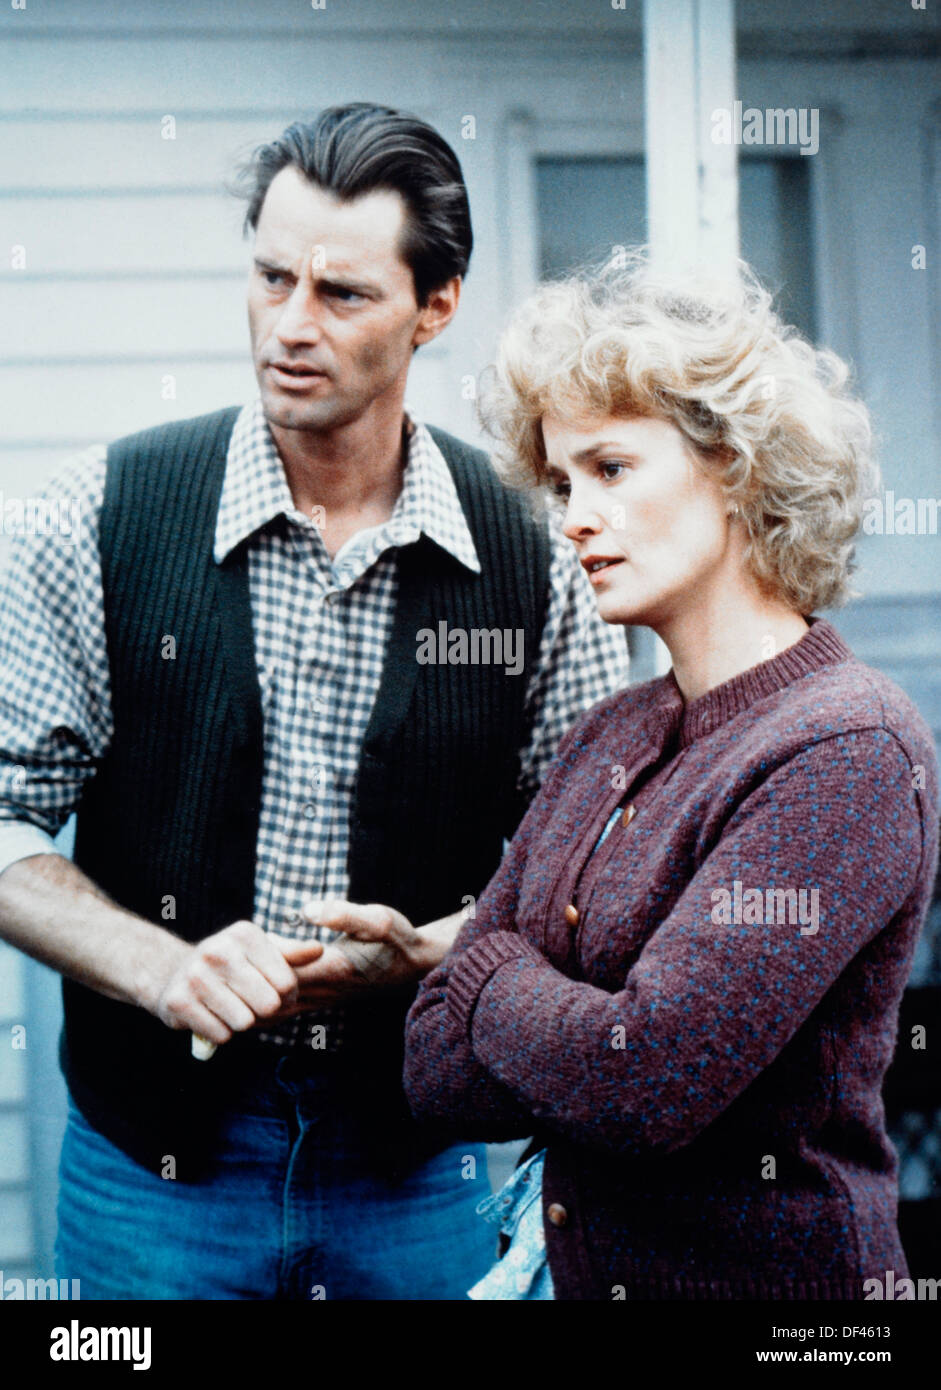 Sam Shepard and Jessica Lange, On-Set of the Film, 'Country', 1984 - Stock Image